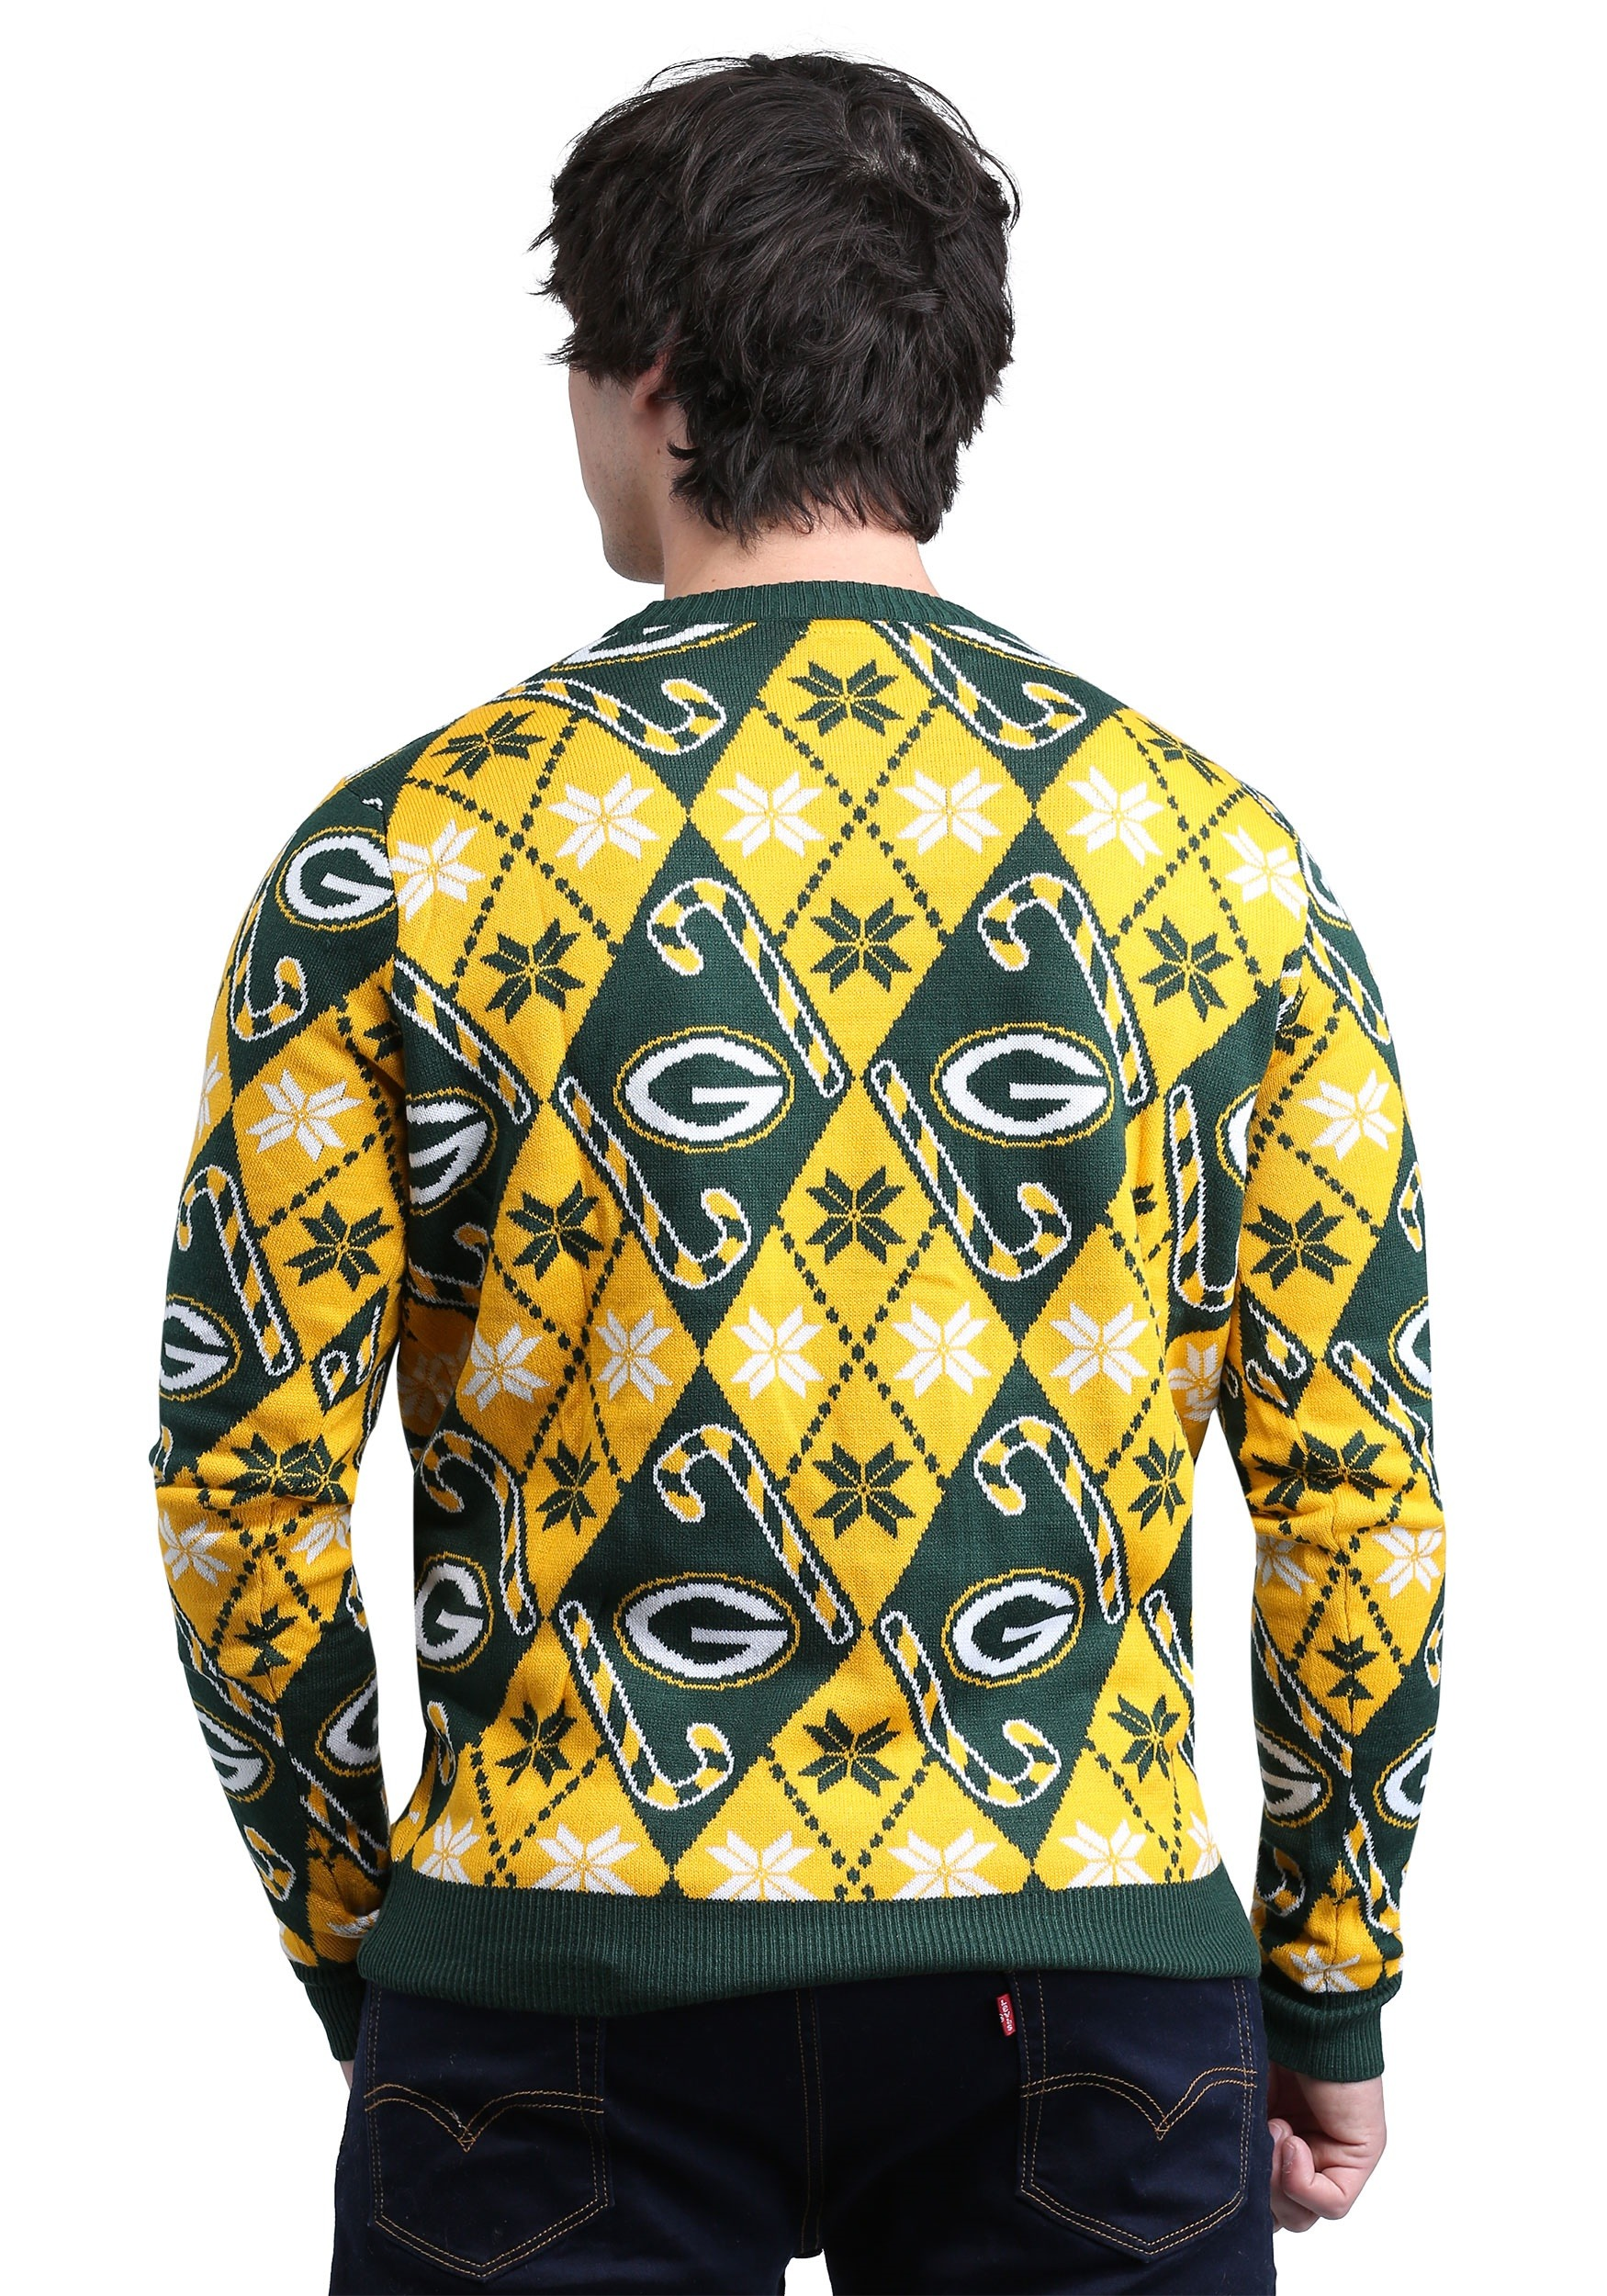 Green Bay Packers Candy Cane Ugly Christmas Sweater